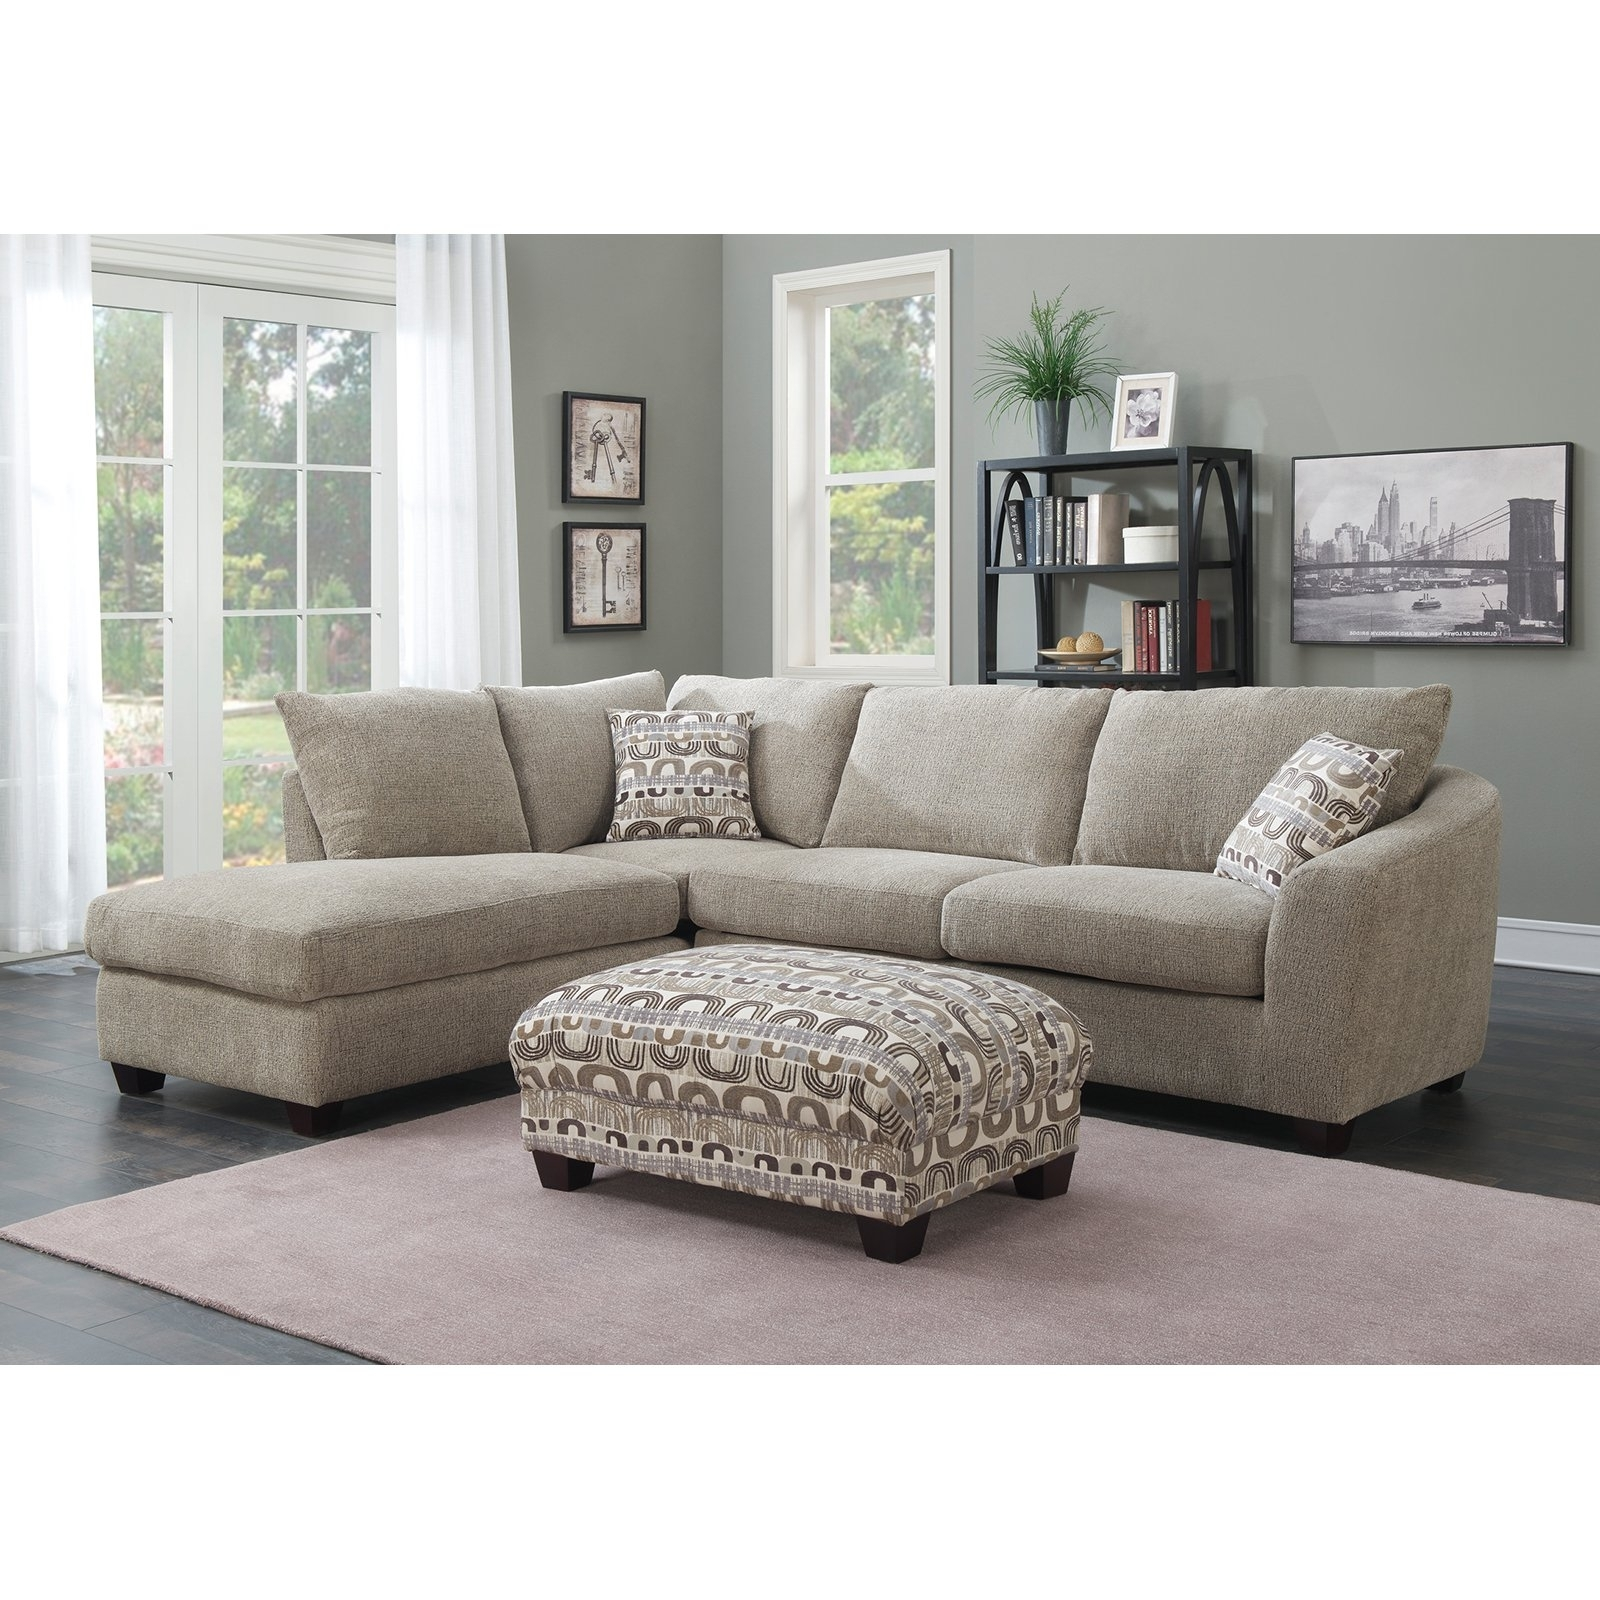 Off Agata Light Grey Sectional Sofas Gray Sofa Modern Fabric Throughout Newest Quebec Sectional Sofas (View 15 of 15)